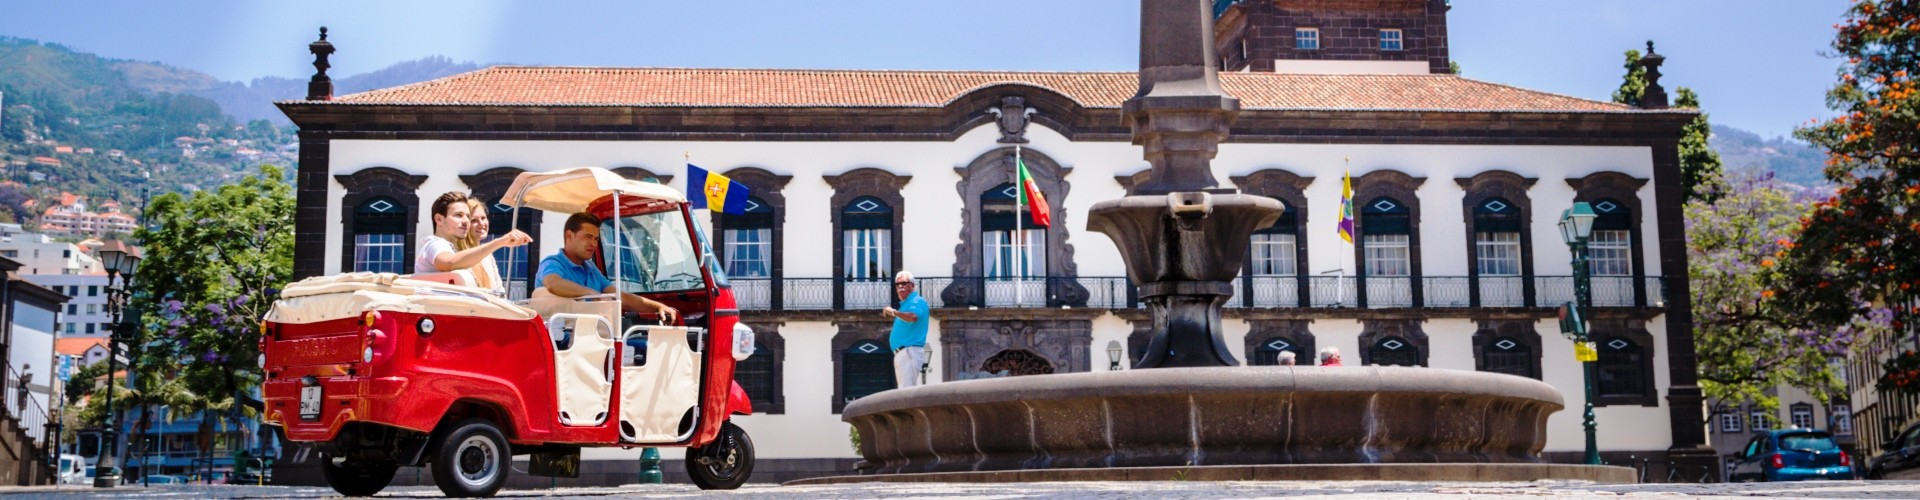 Museums ad Tours Tuk in Funchal, Madeira Island